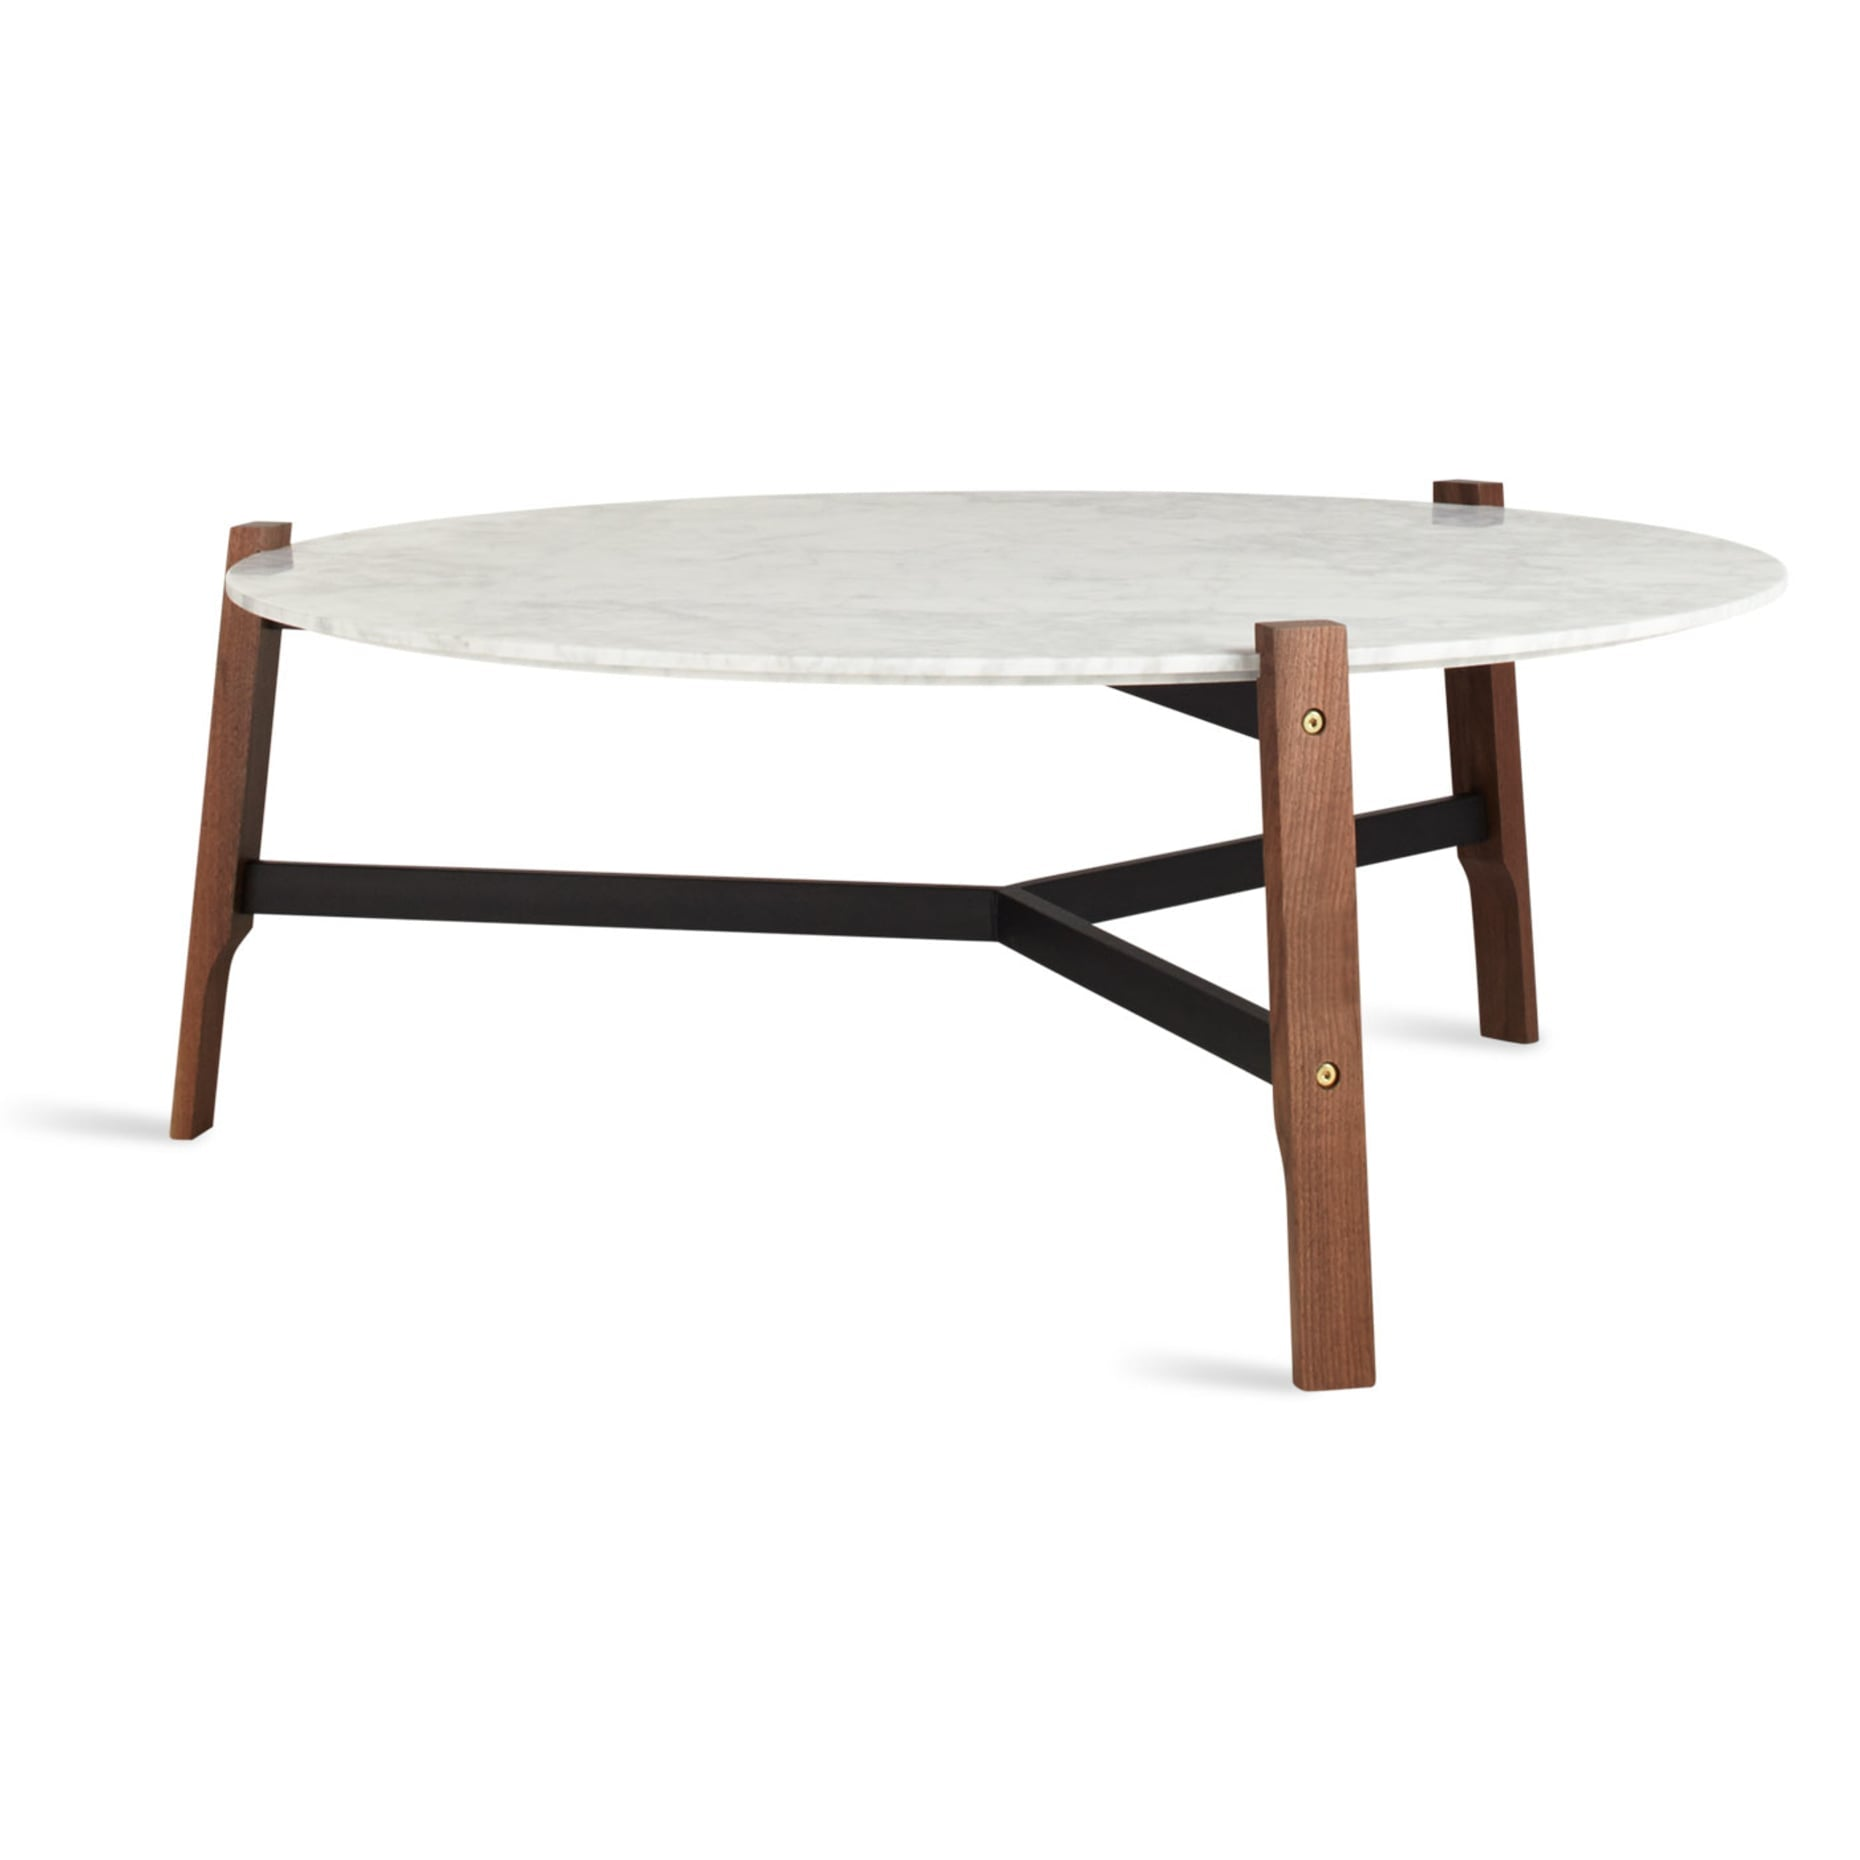 Free Range Coffee Table - Design Distillery